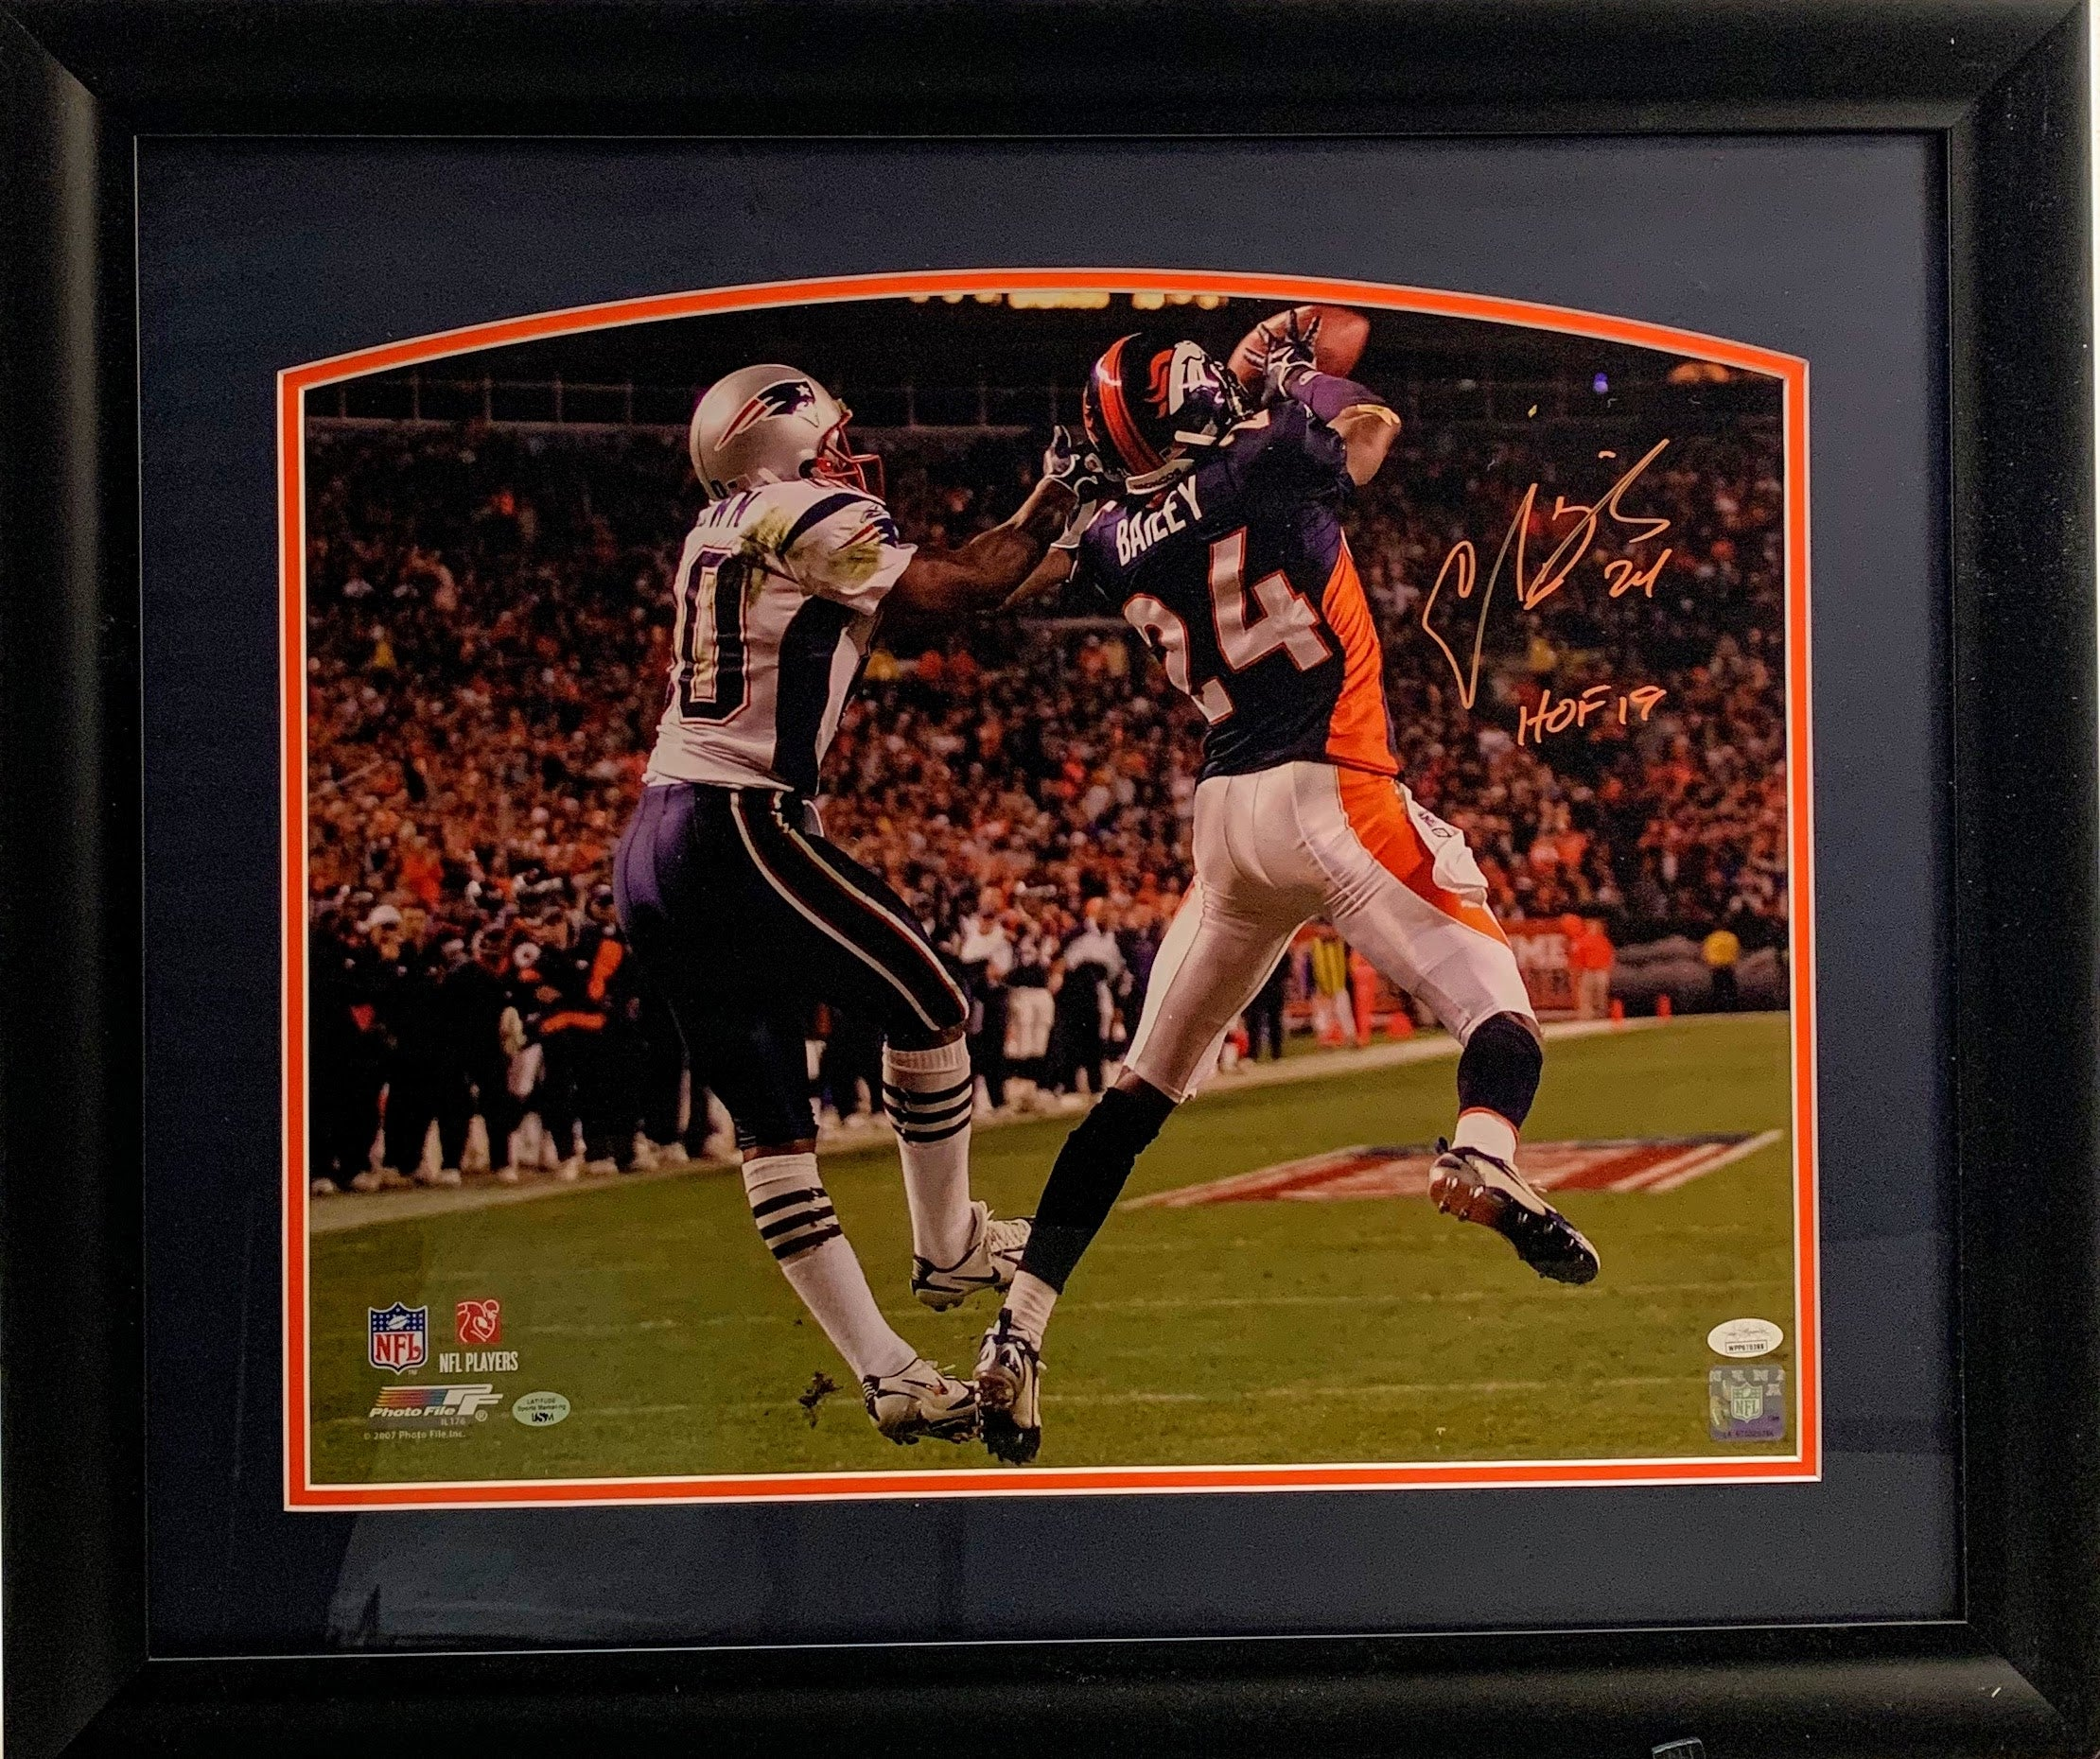 Champ Bailey Signed 16x20 Photo Framed